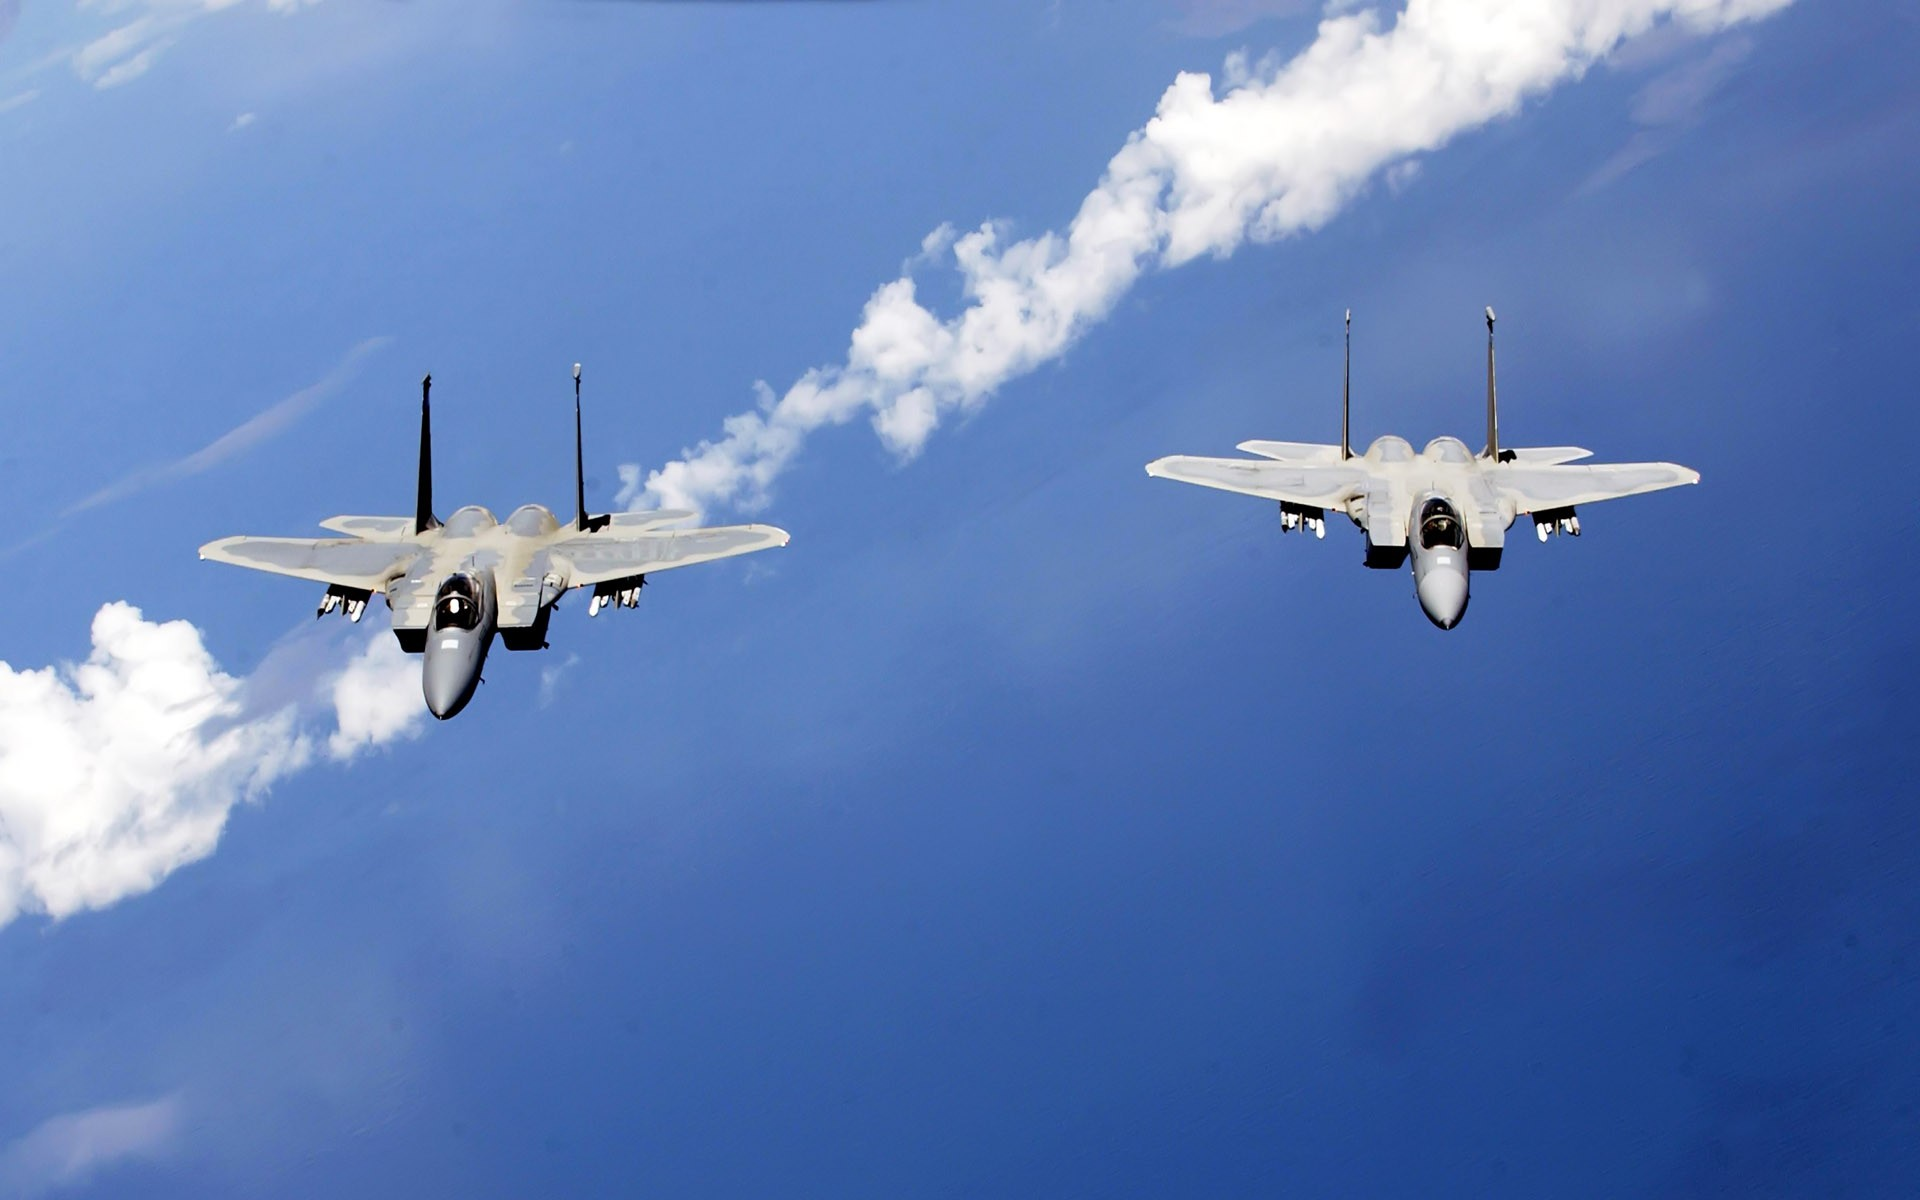 Cute Hawii Wallpapers F 15 Eagles From The Air National Guard Wallpapers Hd